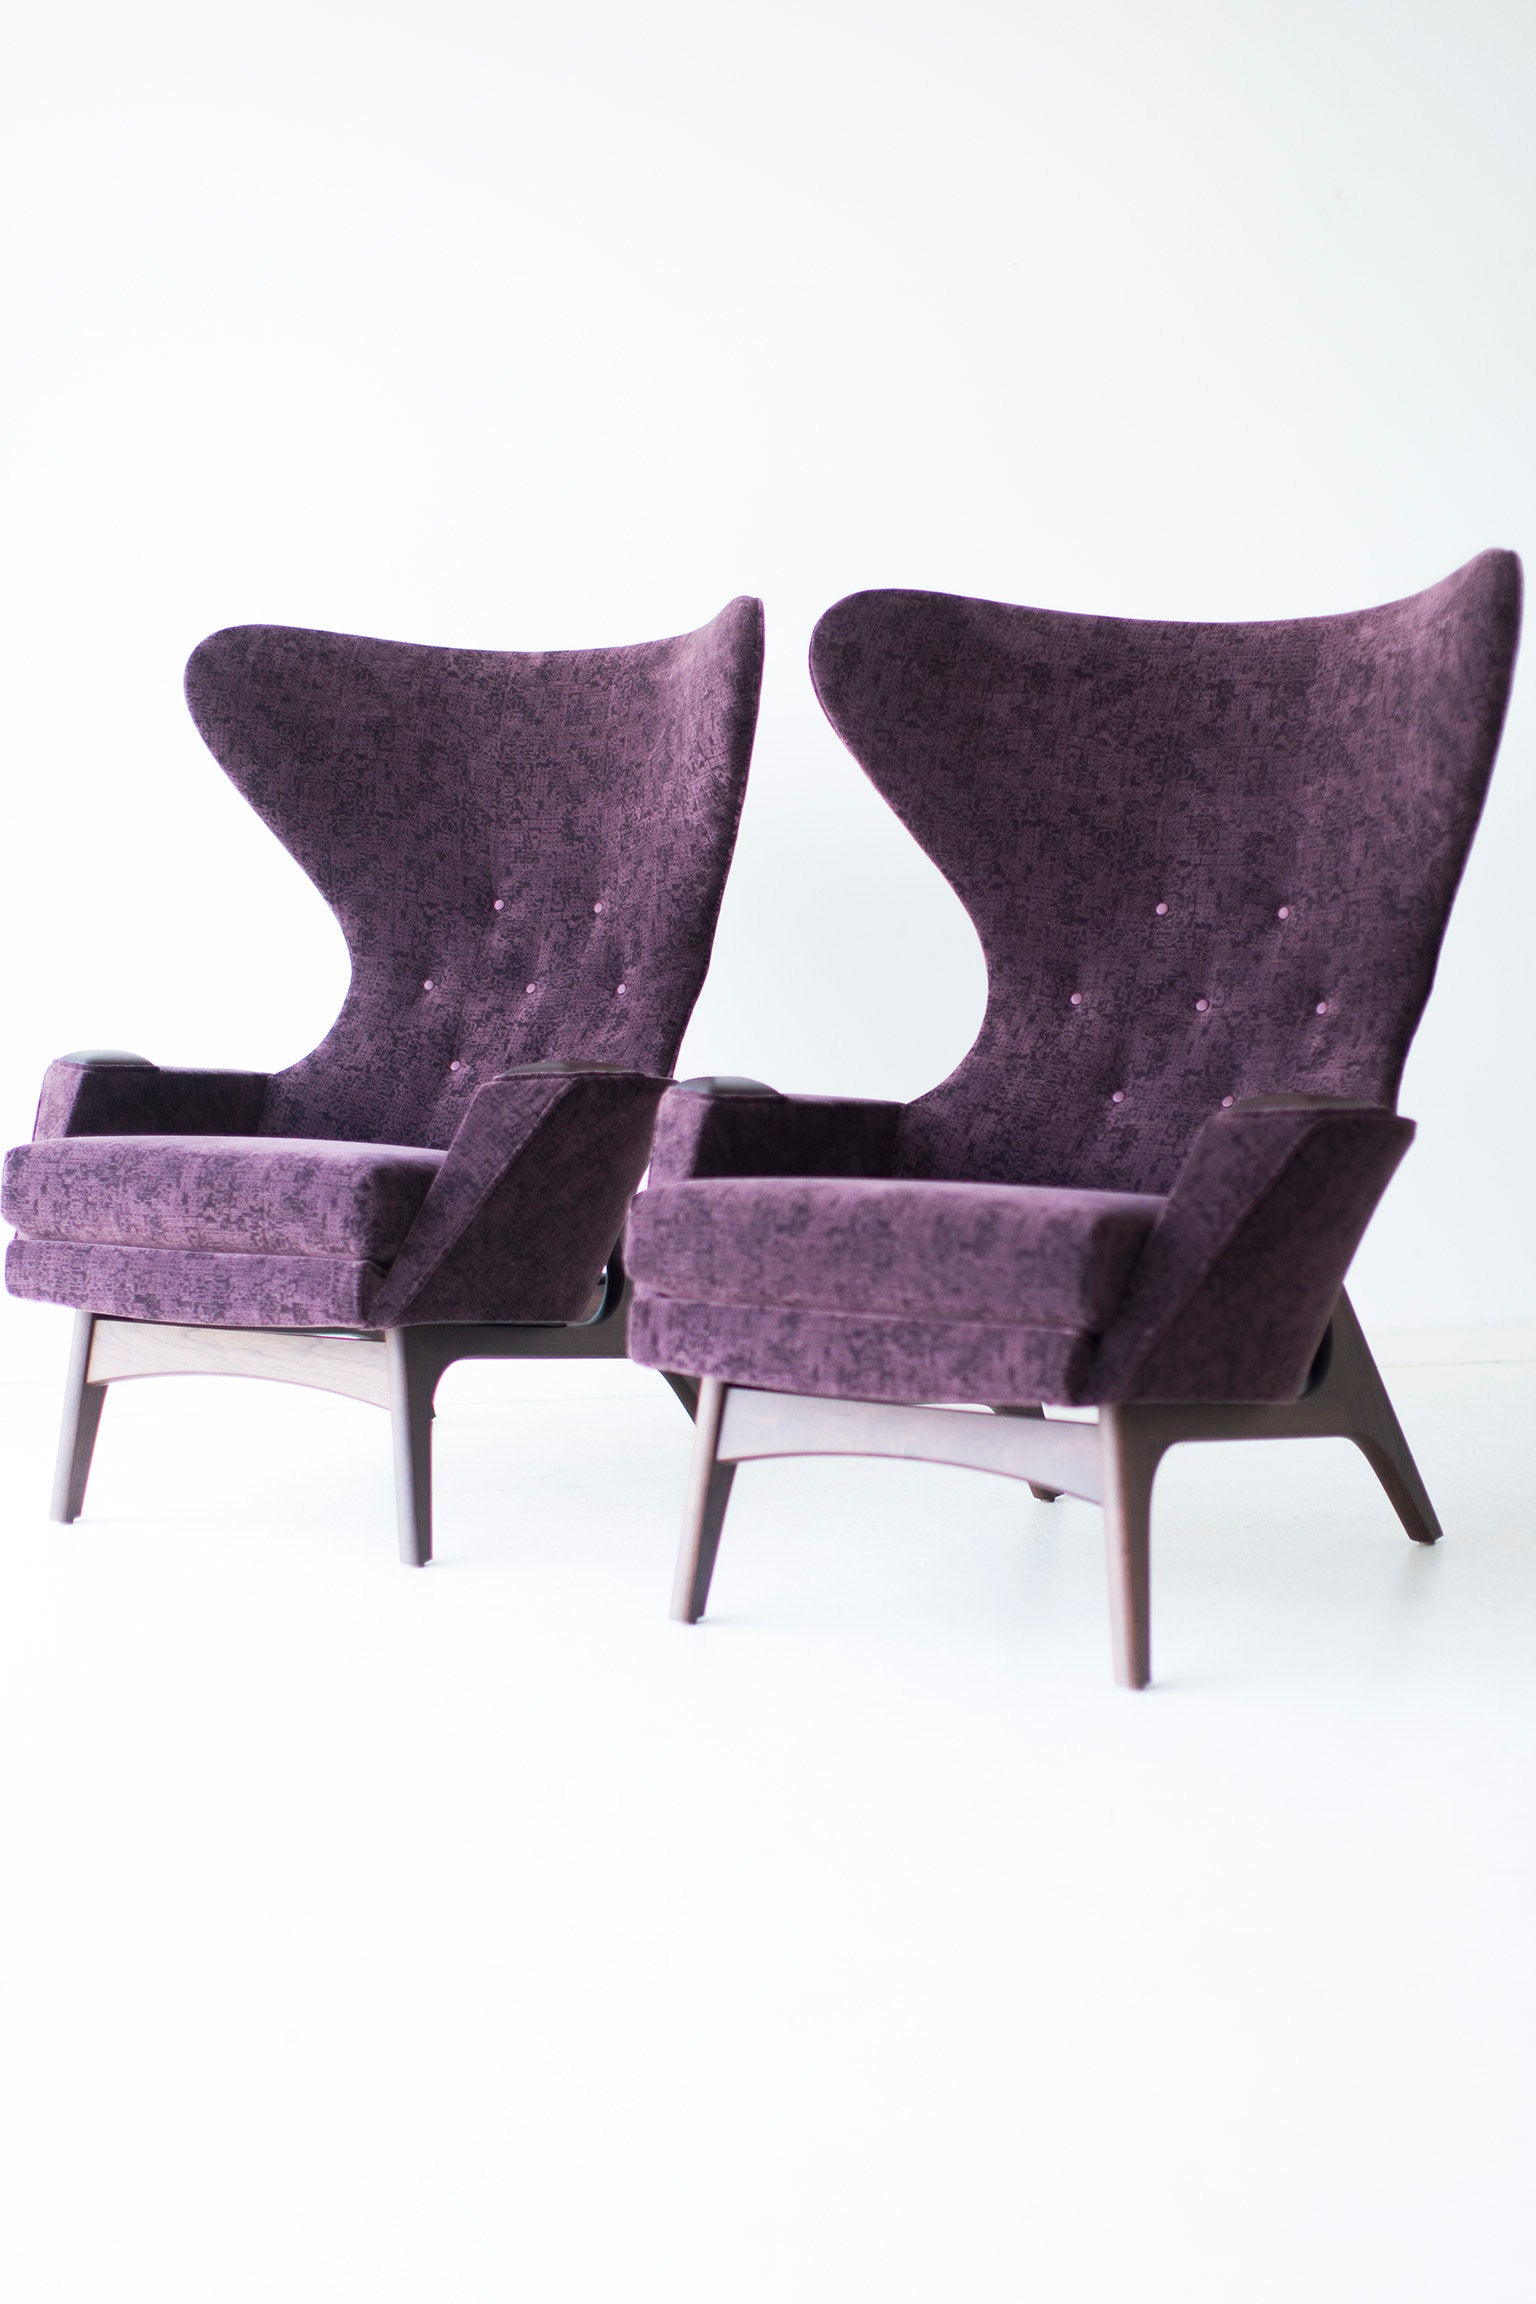 Sanders-modern-wingback-chairs-1407-01